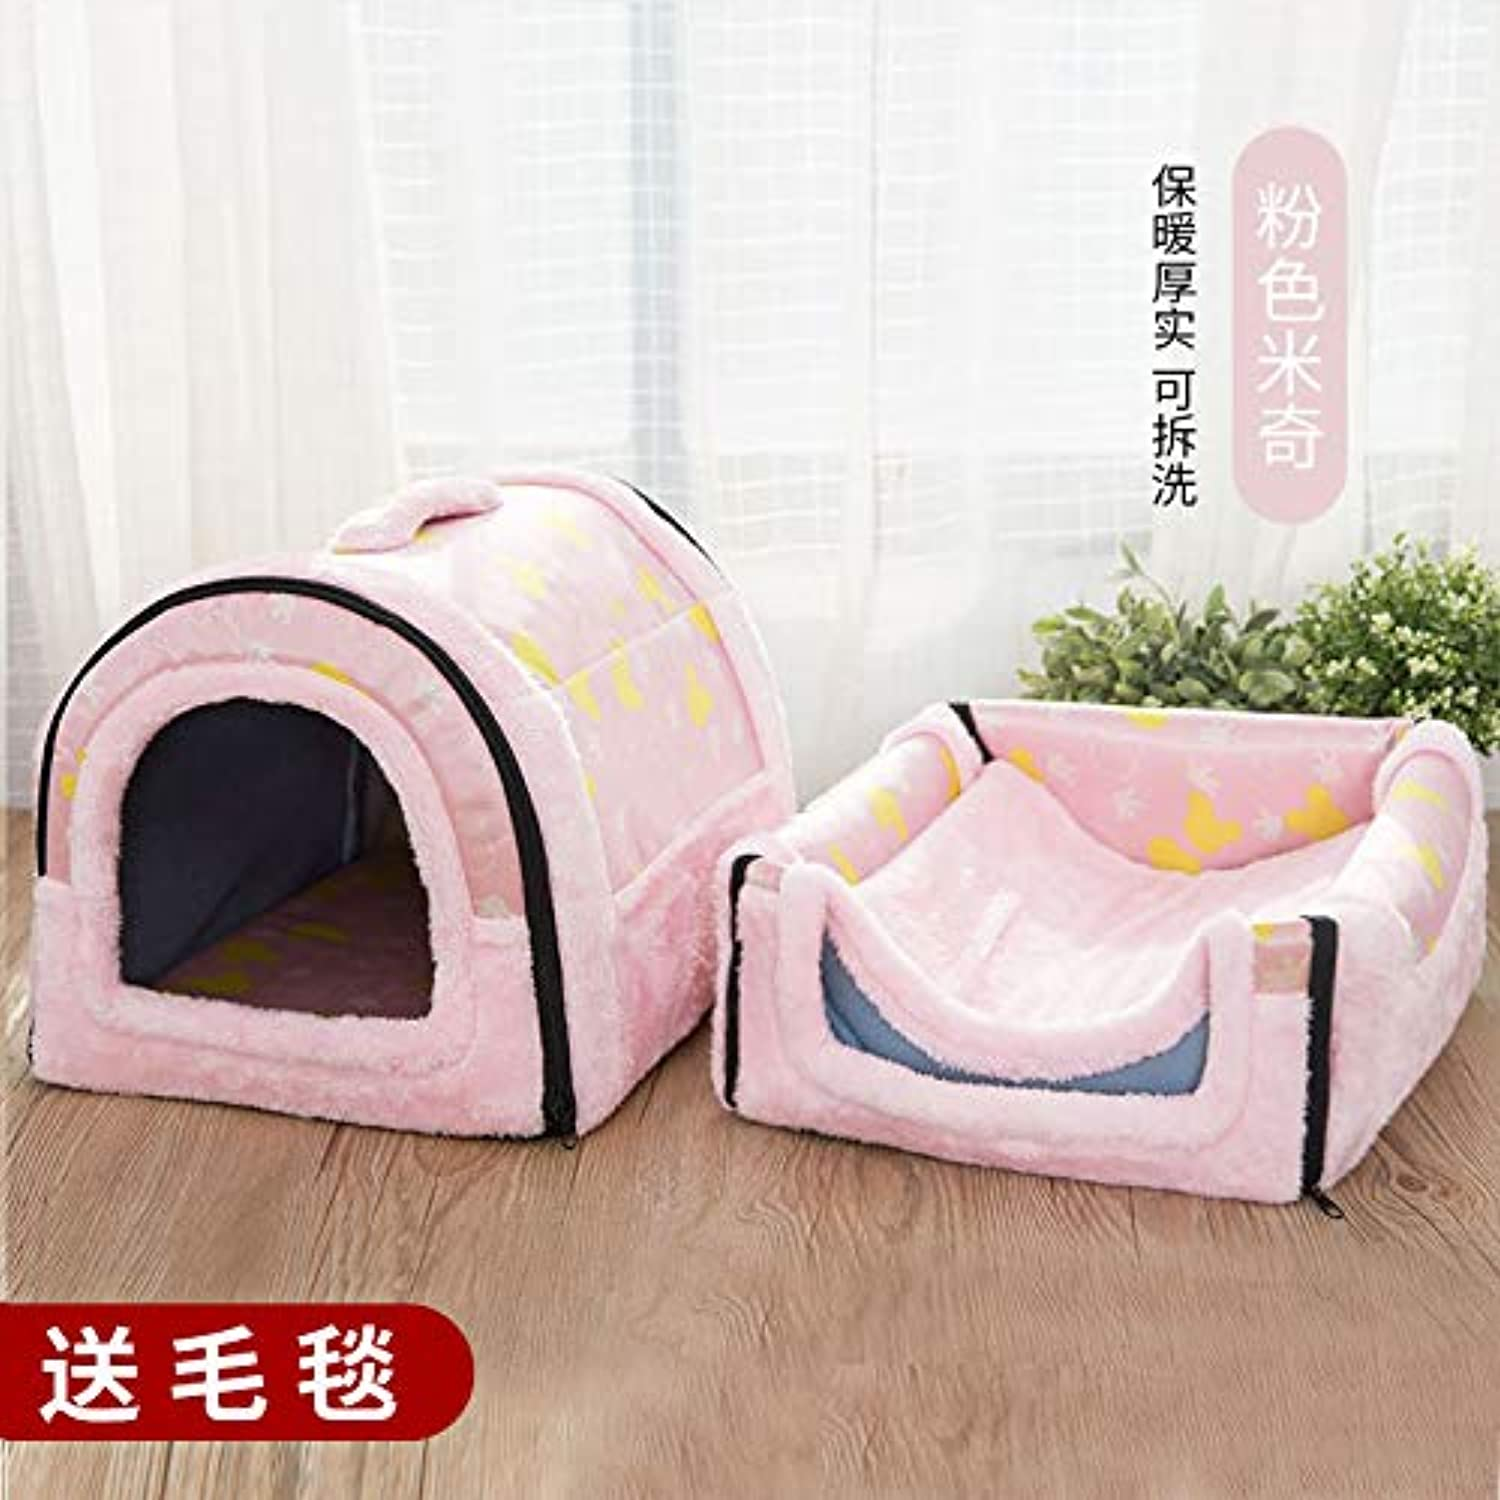 Kennel winter mediumsized small di dog house cat pet house bed washable four seasons universal yurt, pink Mickey, L, 60cm47cm45cm